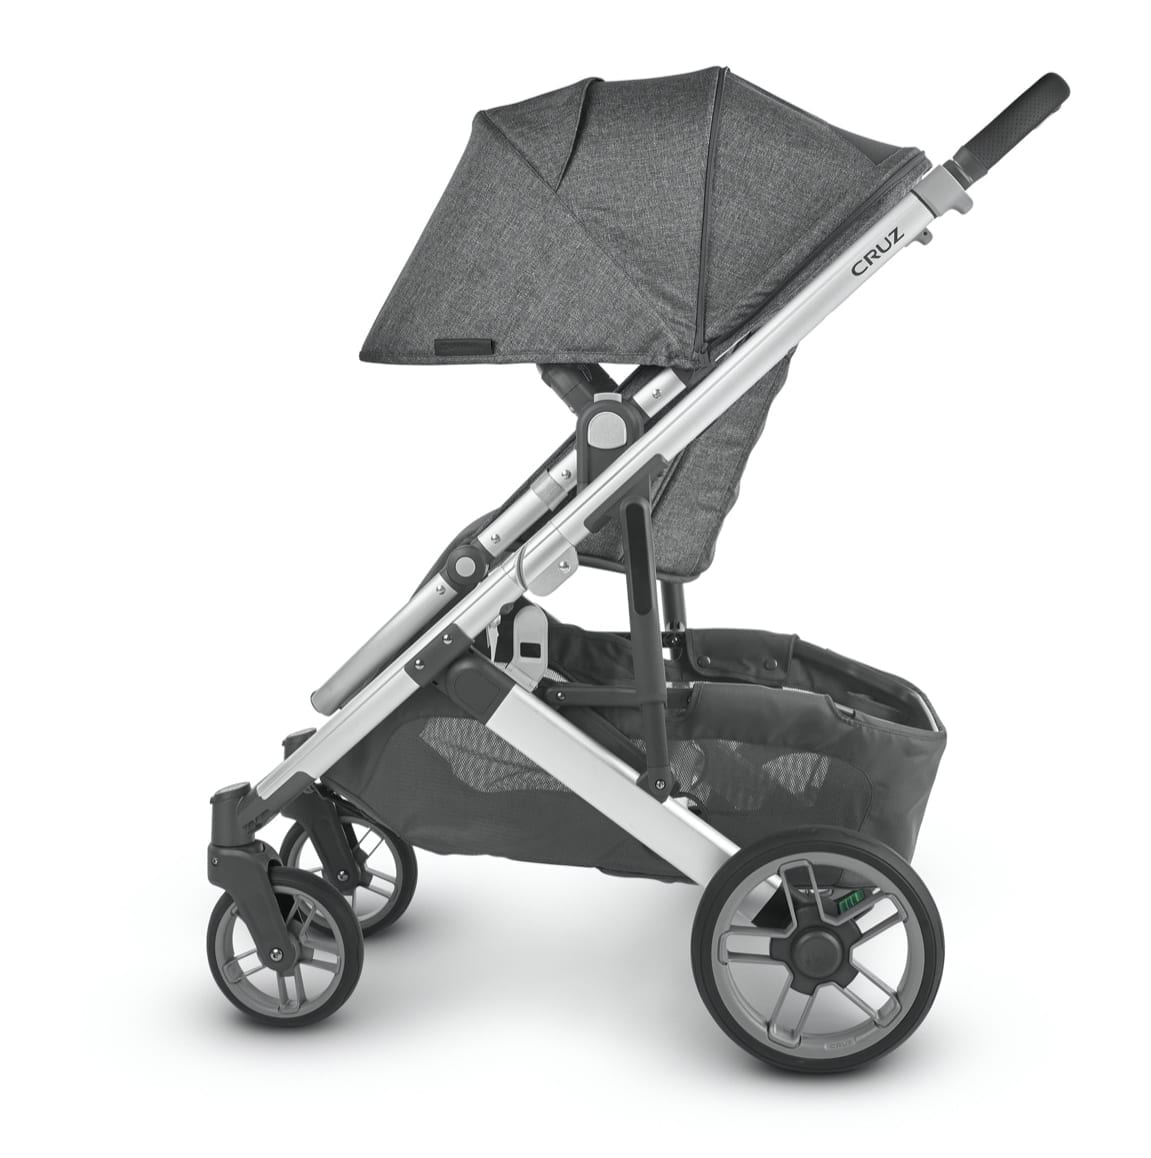 UPPABaby VISTA 2 Bundle with Maxi Cosi Pebble Pro & Base product image